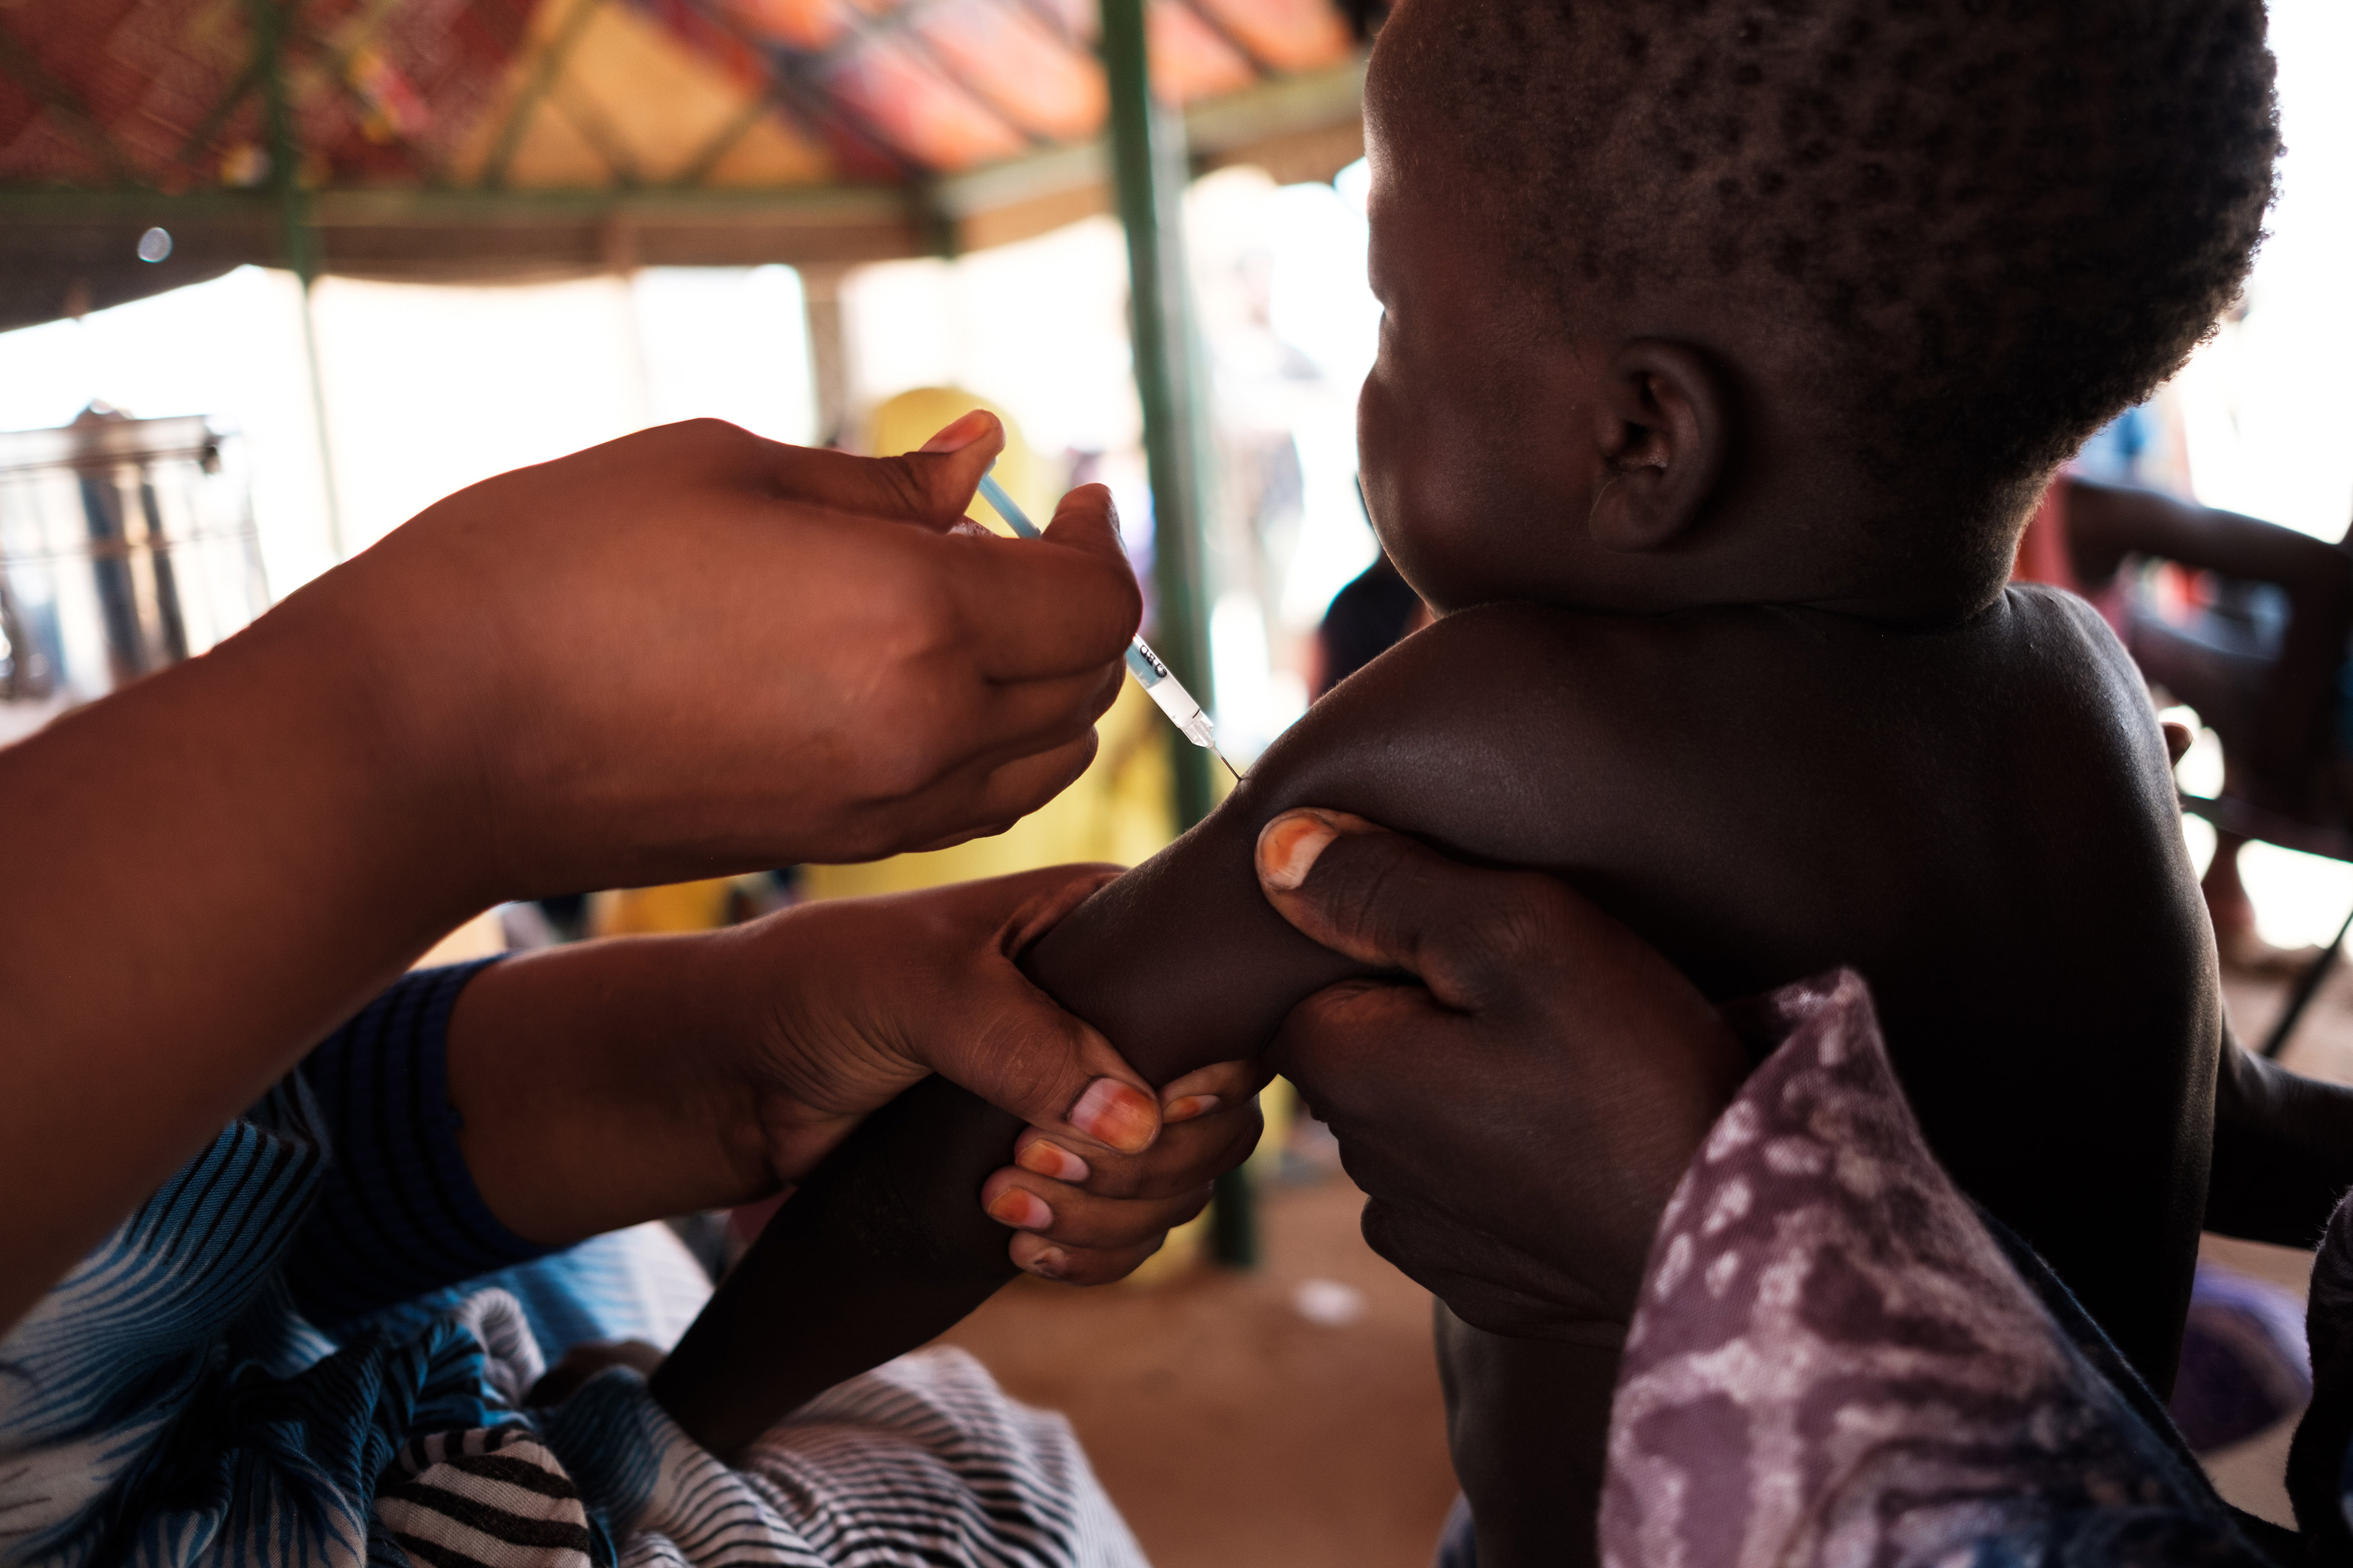 Tinelbaraka Walet Brahim being vaccinated at a homestead in the village of Lemetrewegh in the Hodh ech Chargui region of Mauritania